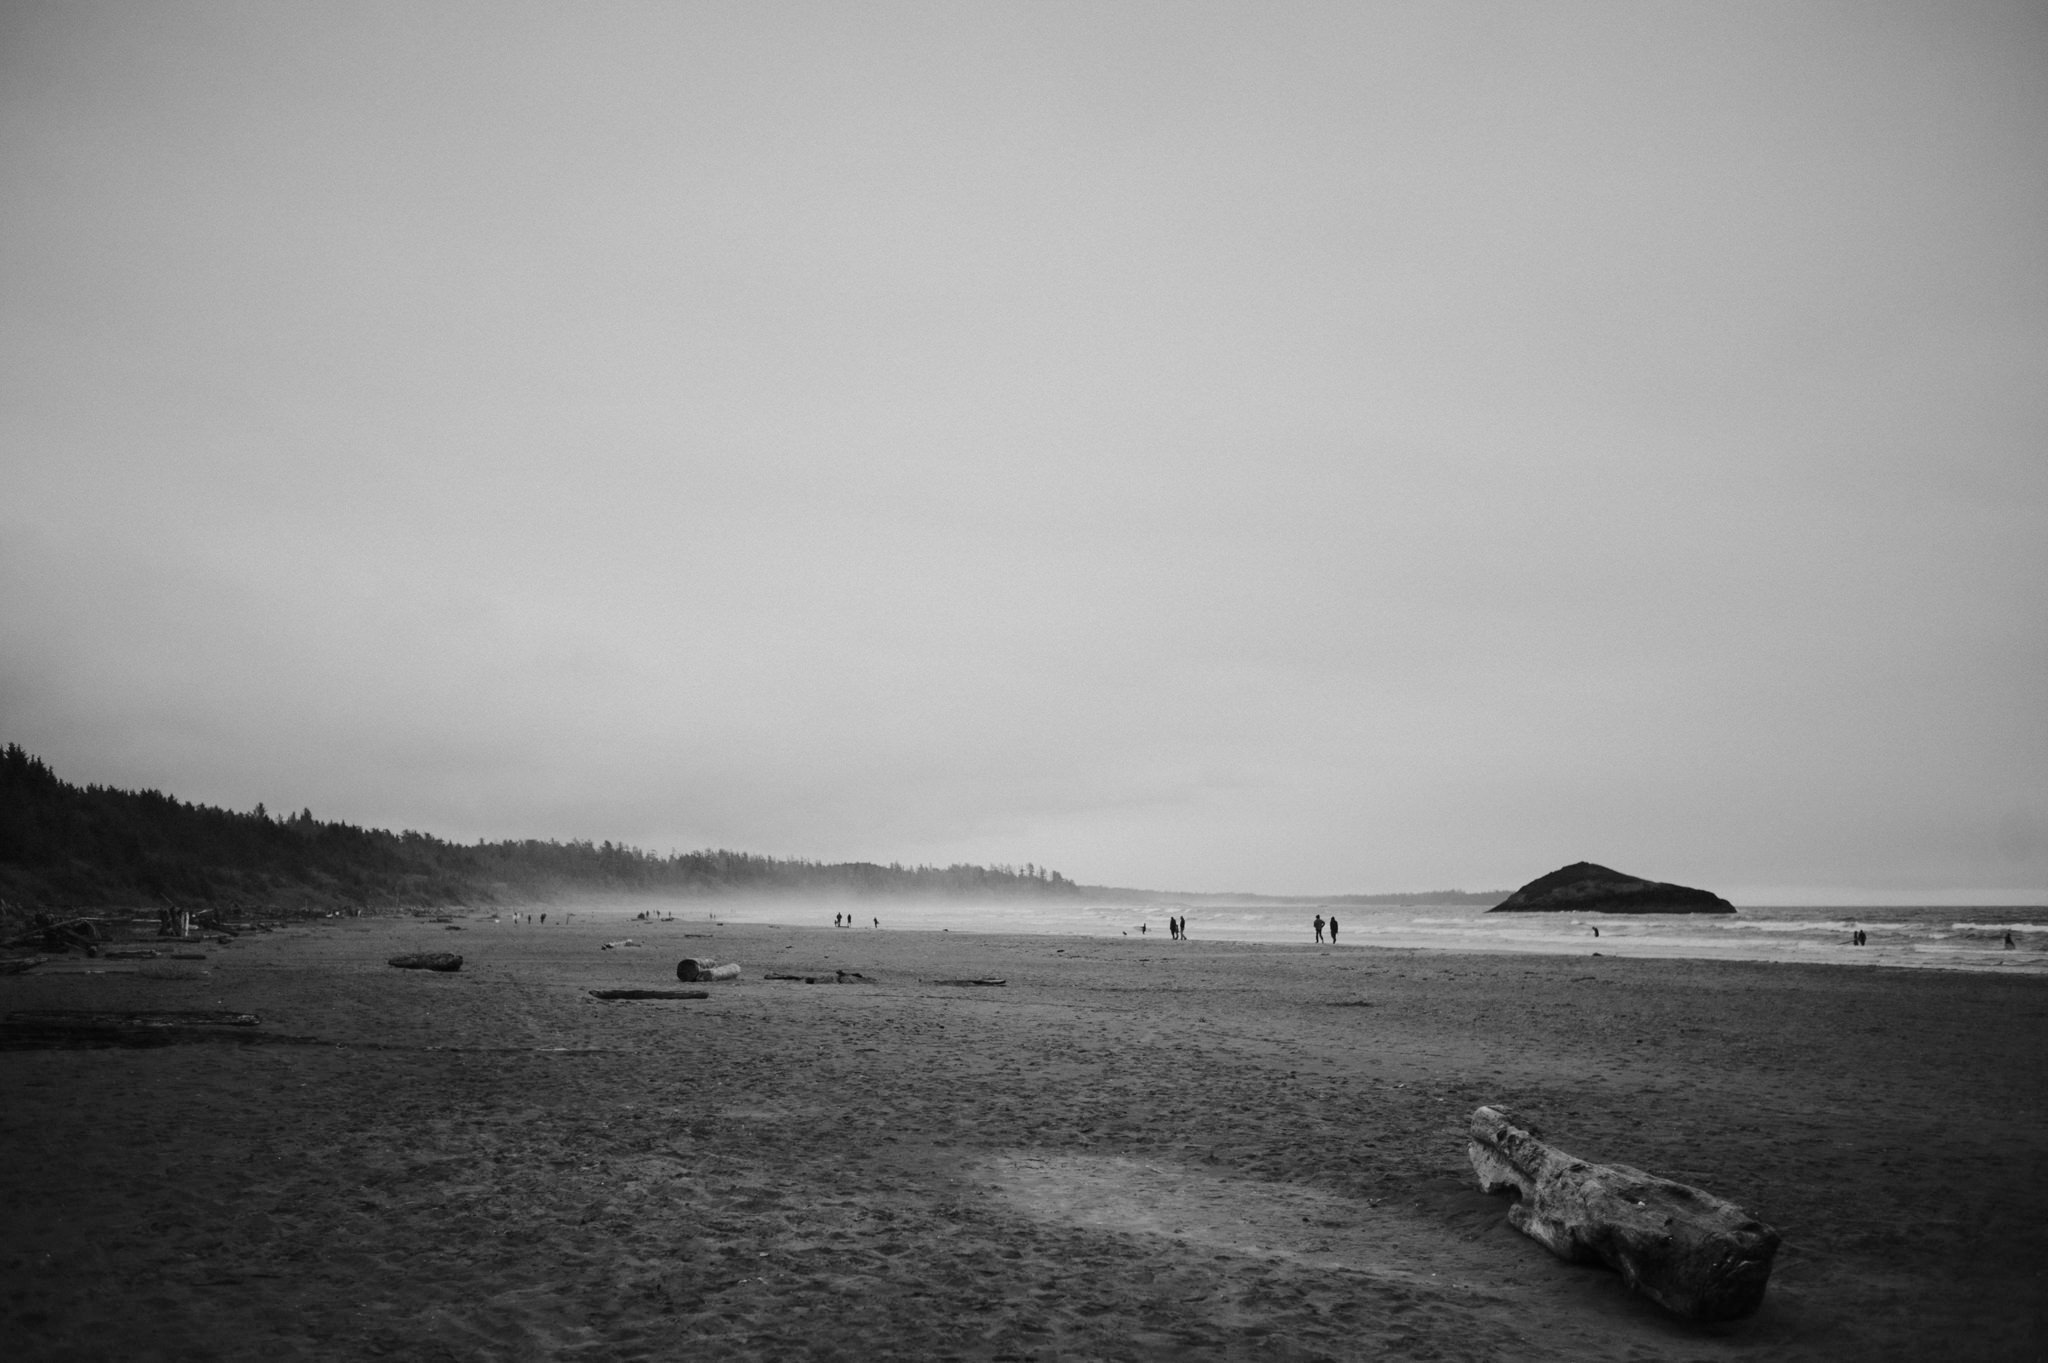 Long Beach in Tofino